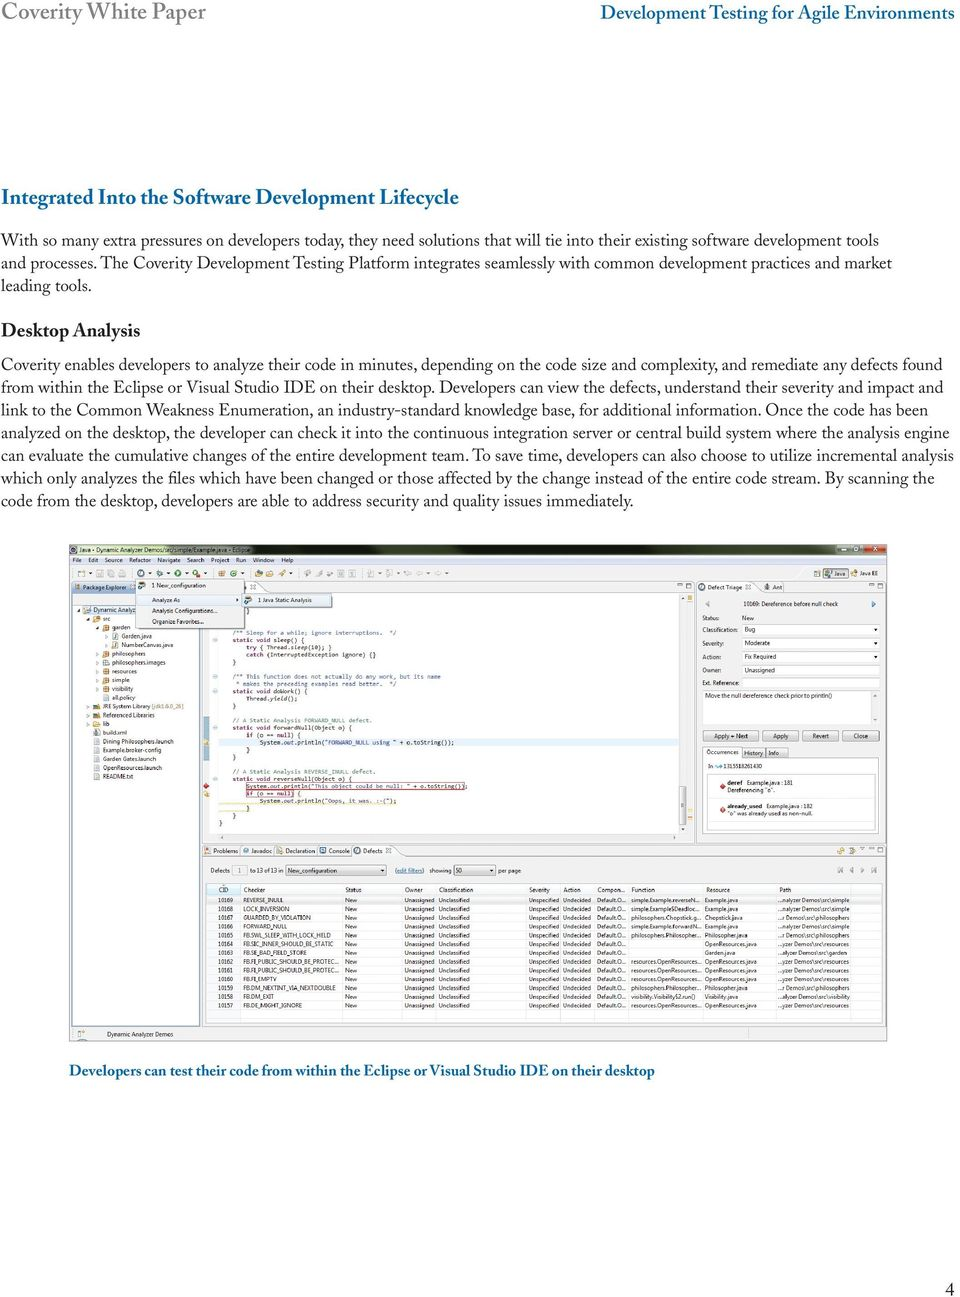 Desktop Analysis Coverity enables developers to analyze their code in minutes, depending on the code size and complexity, and remediate any defects found from within the Eclipse or Visual Studio IDE